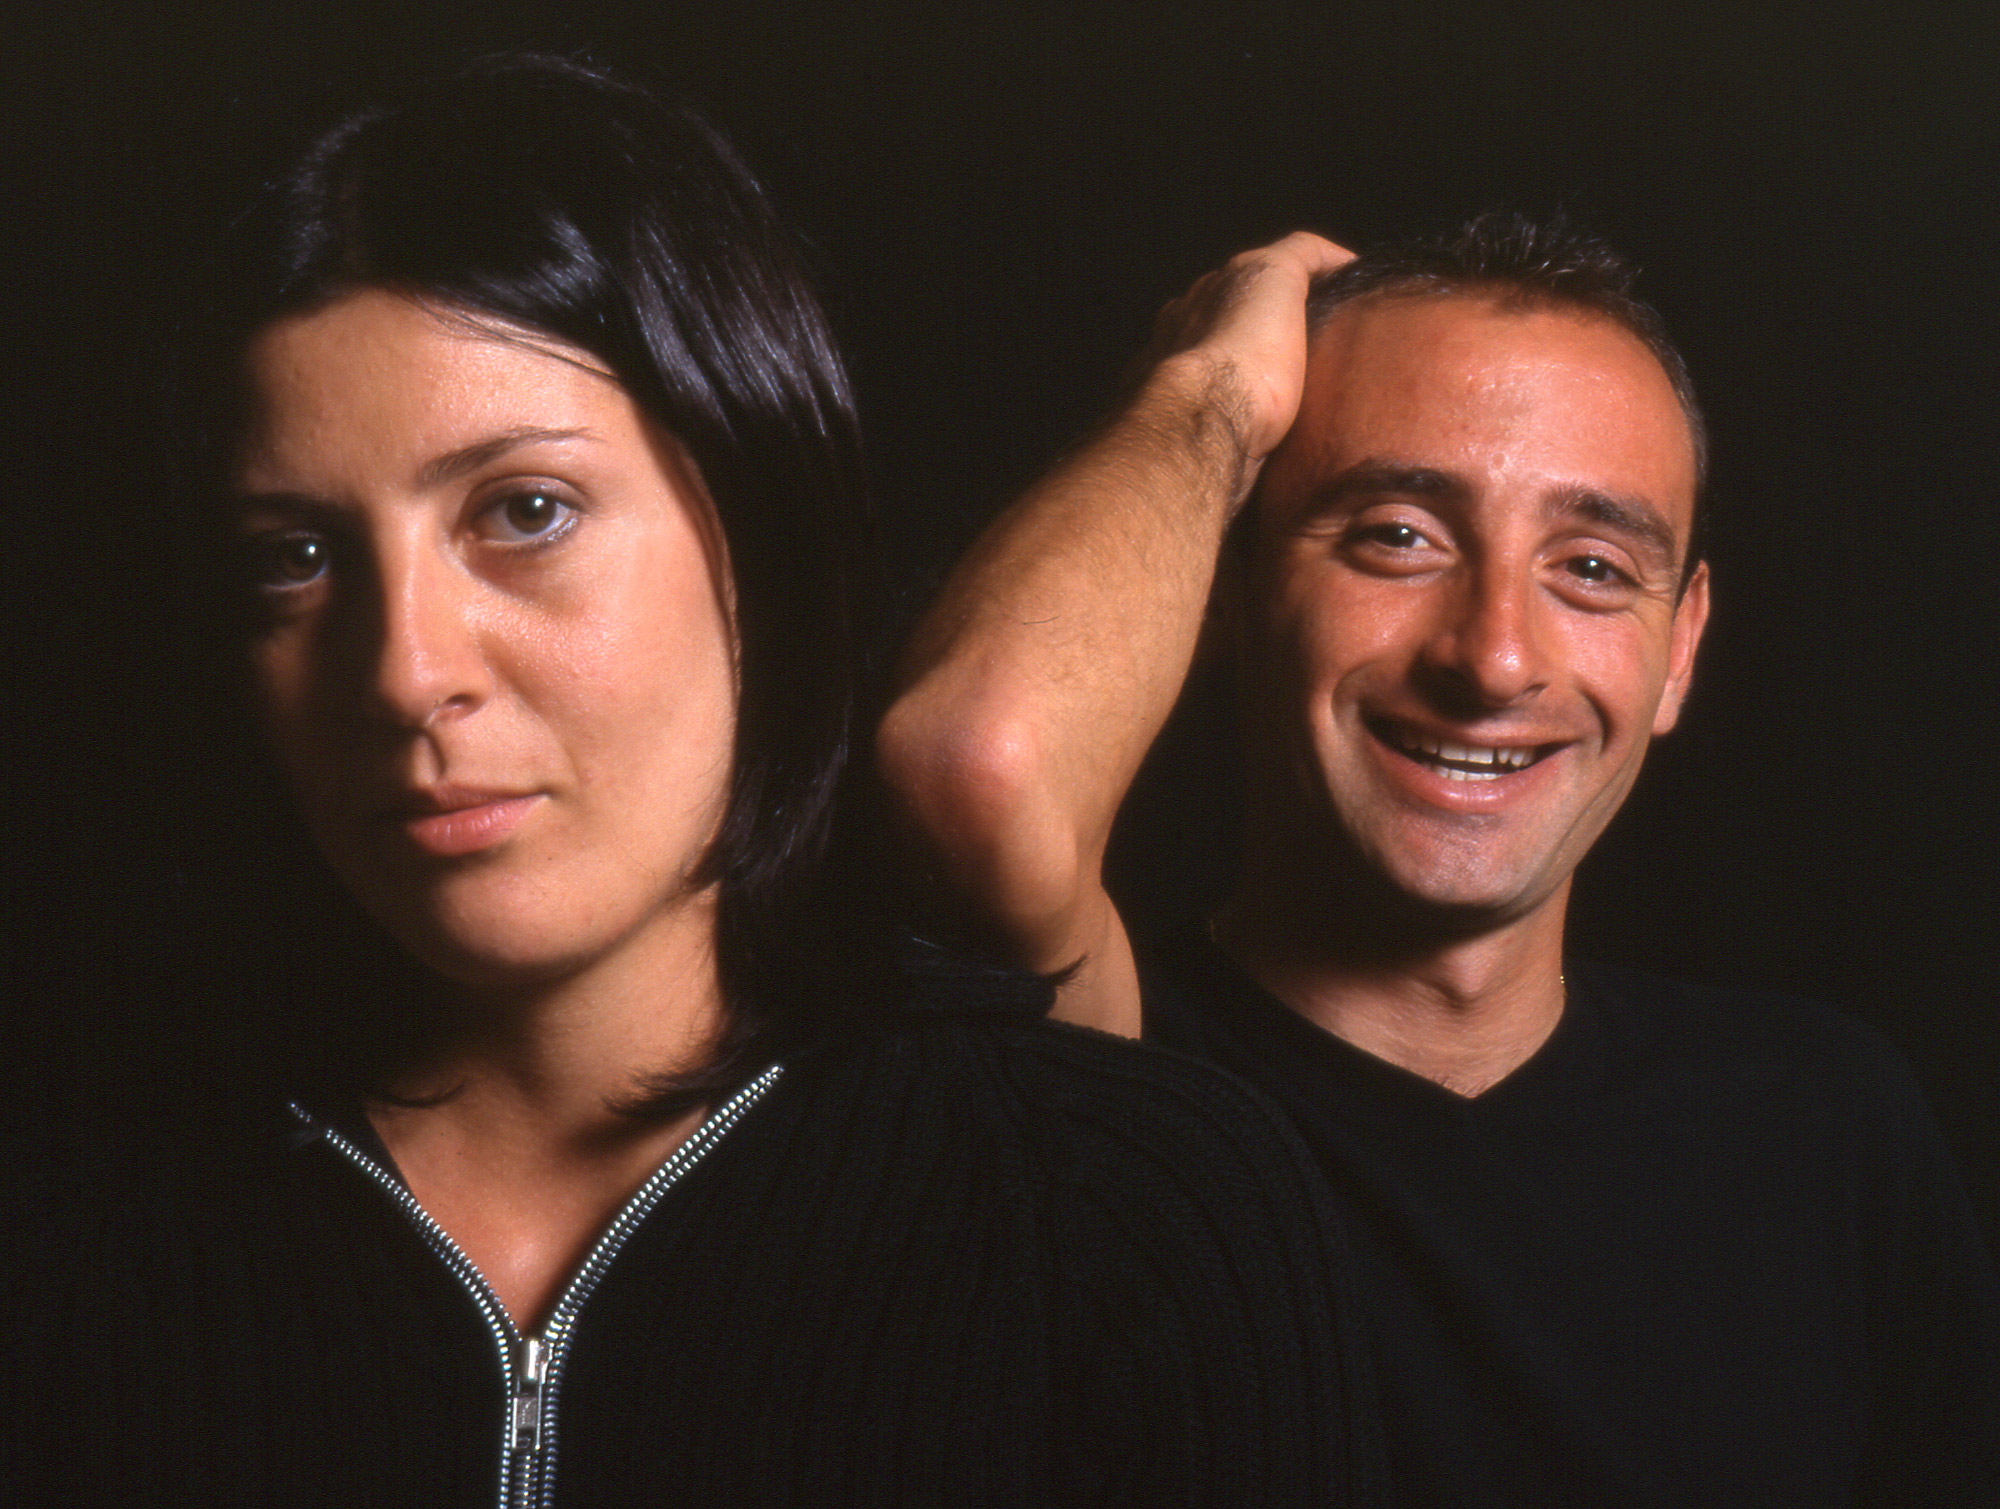 Paolo Bettini with his wife Monica